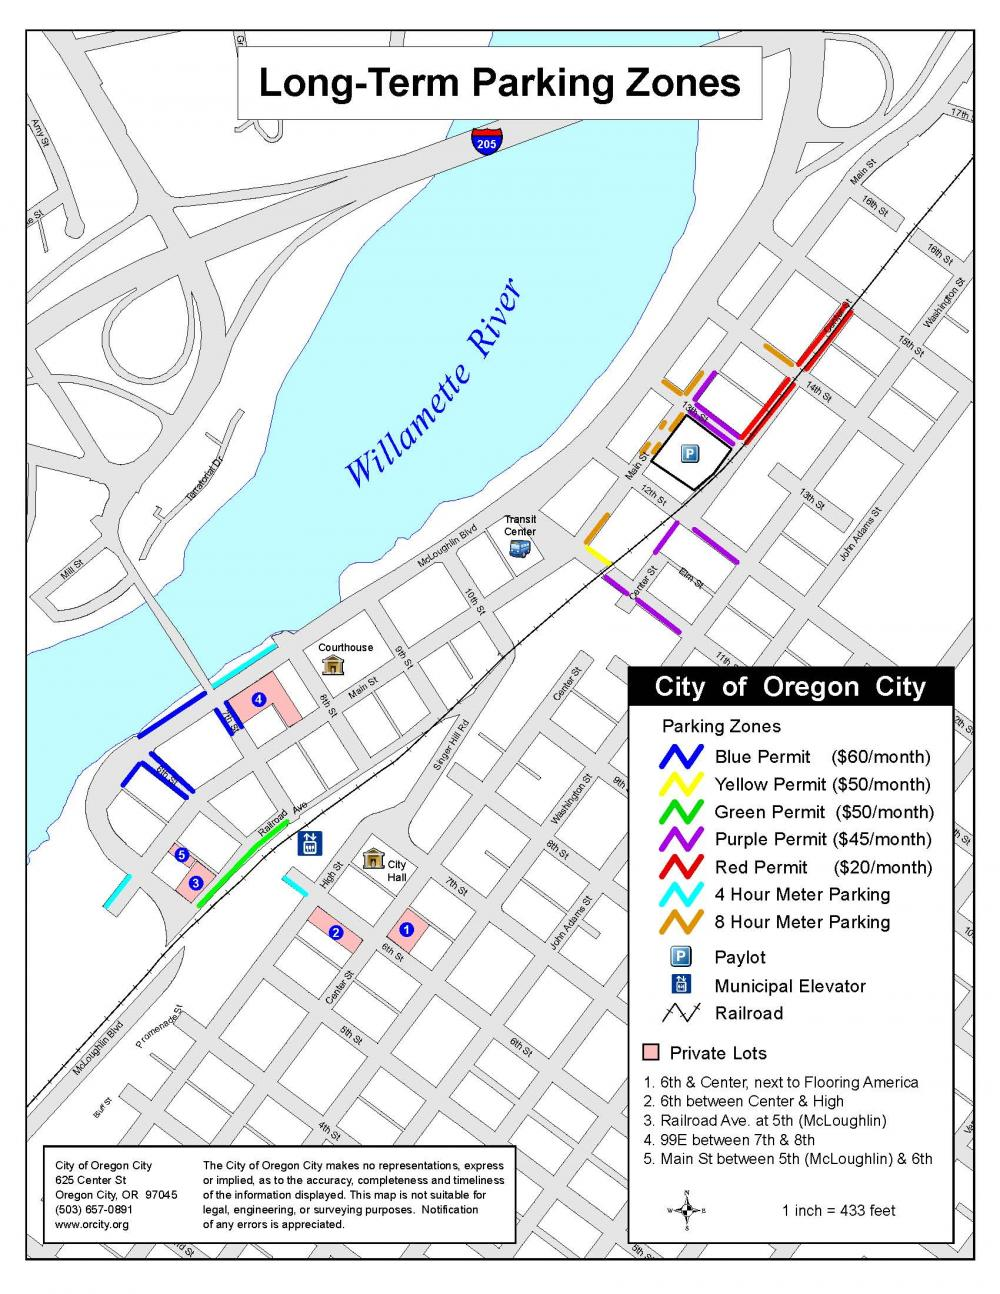 Downtown Parking Information | City of Oregon City